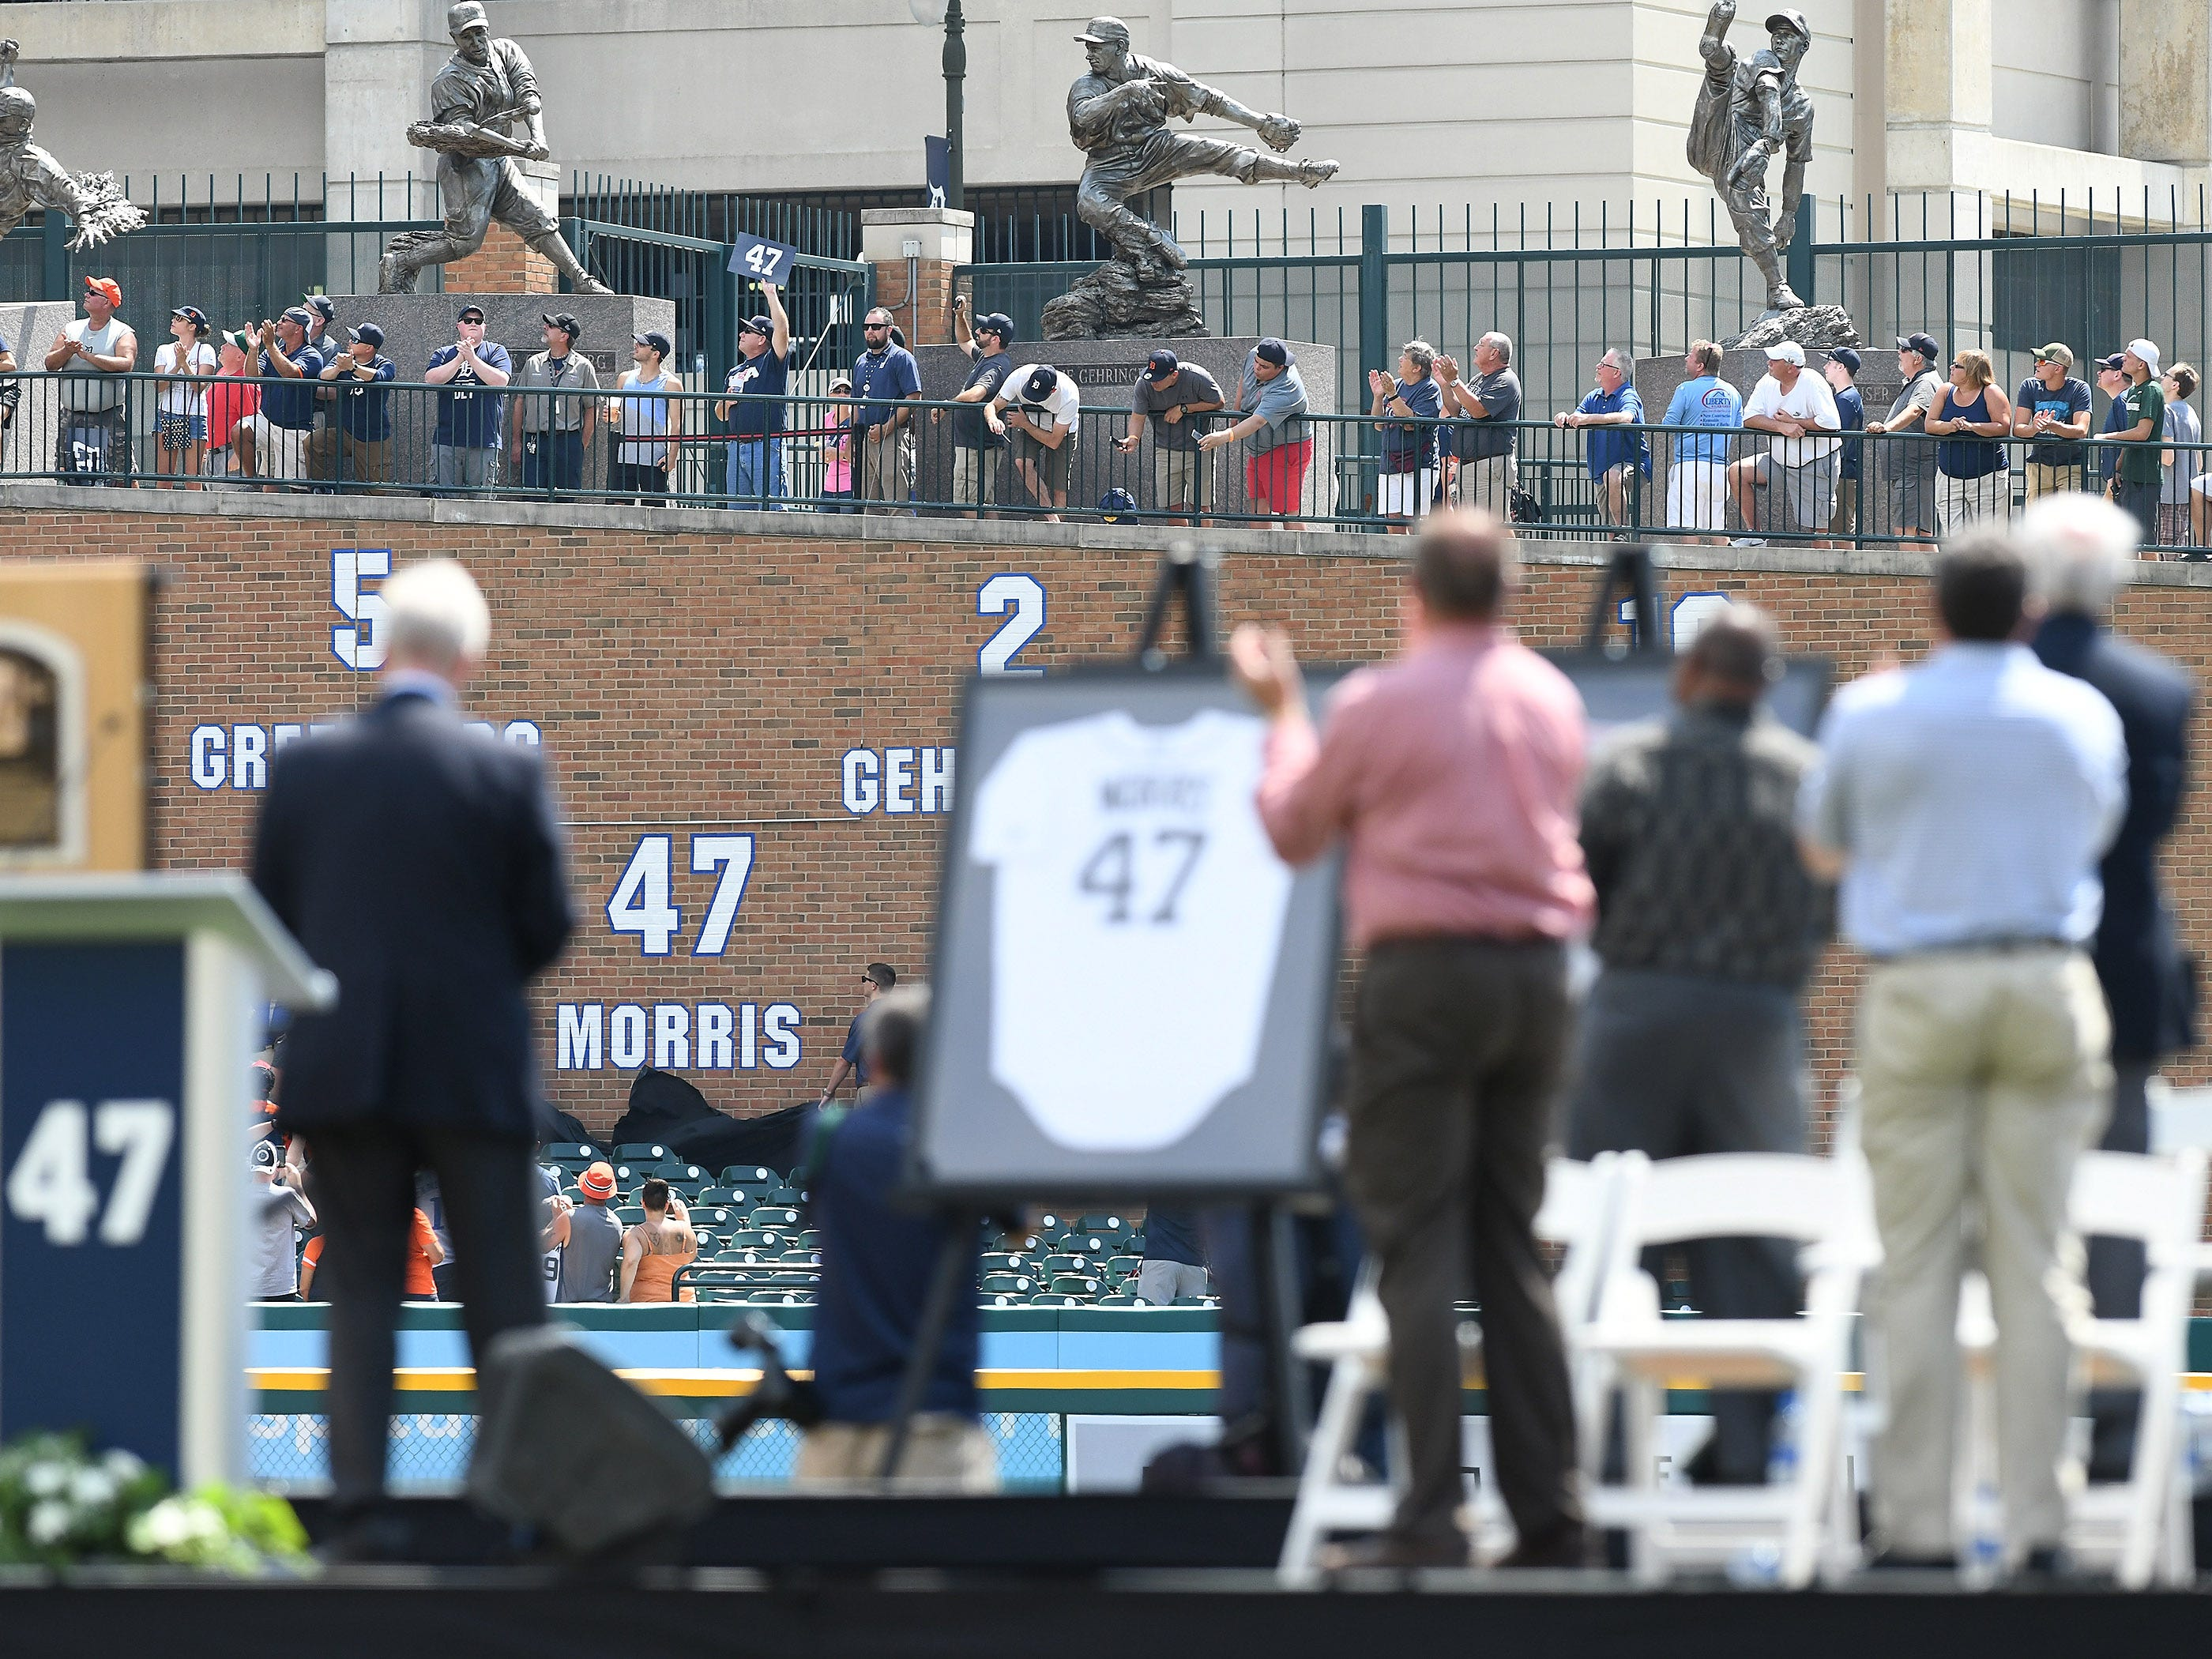 Fans and players on the stage stand and cheer as the #47 is uncovered on the center field wall during the special pregame ceremony to retire the #47 of Tigers pitcher and Hall of Fame pitcher Jack Morris.